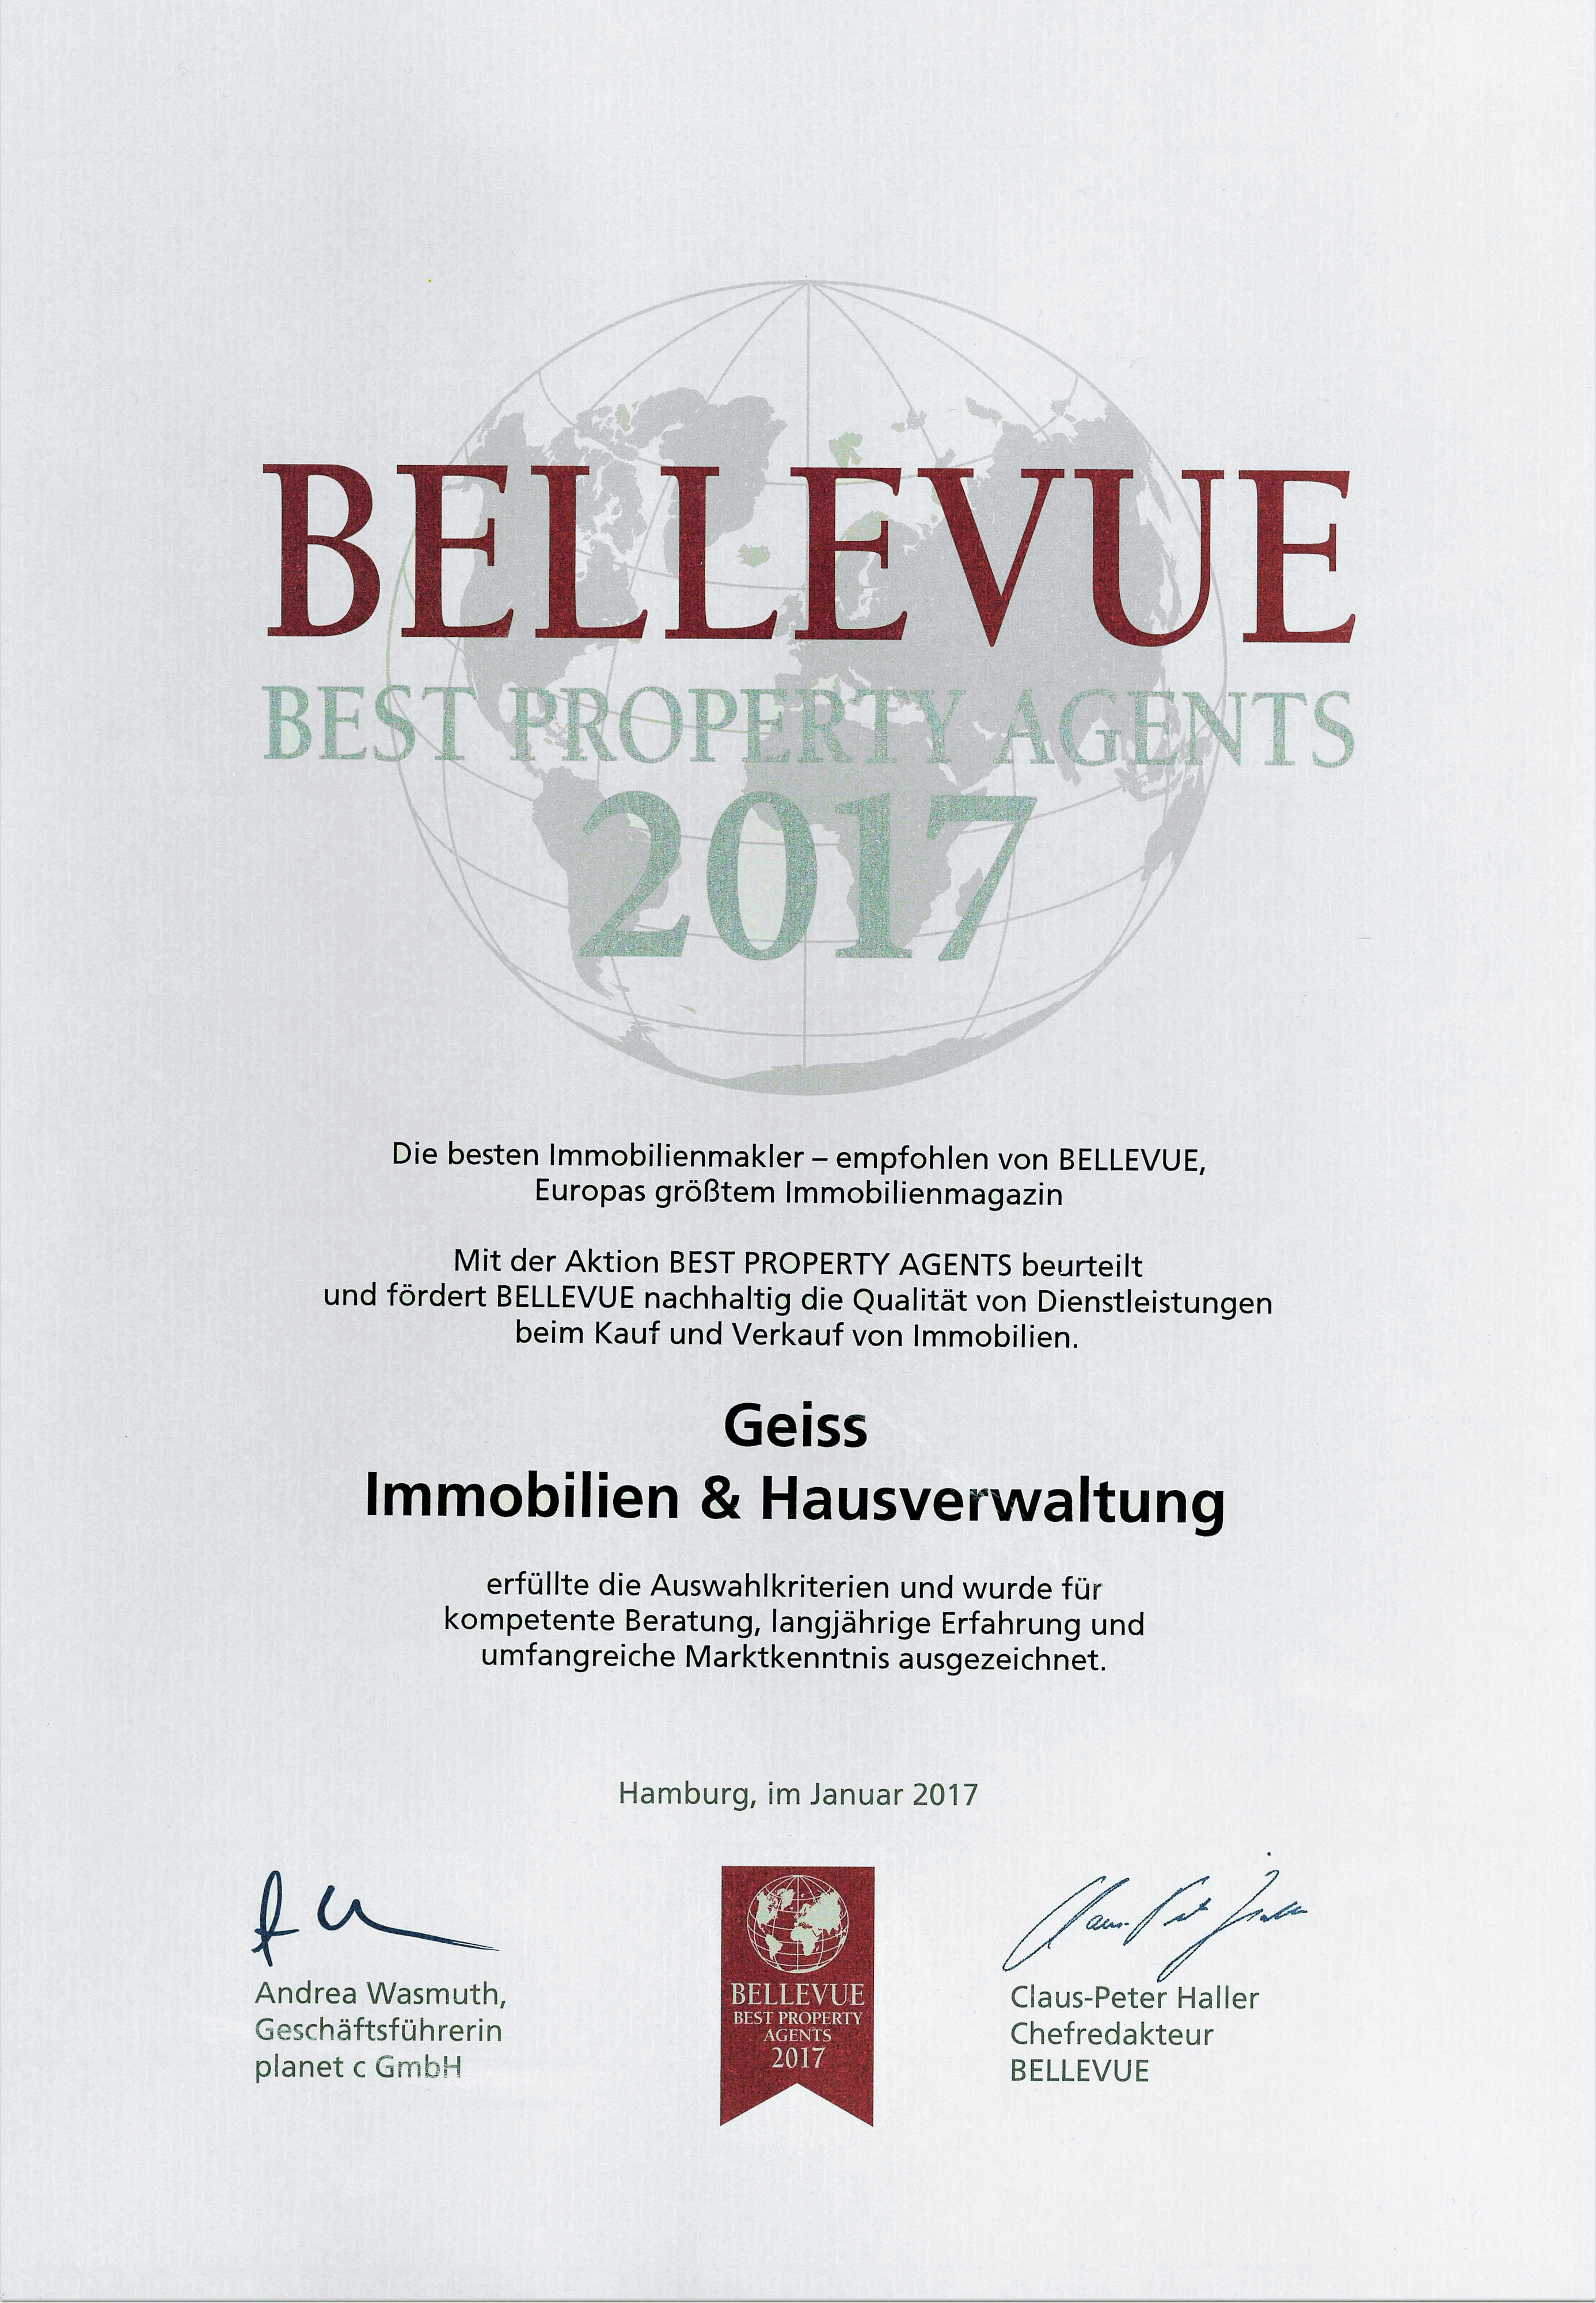 Bellevue Best Property Agents 2017